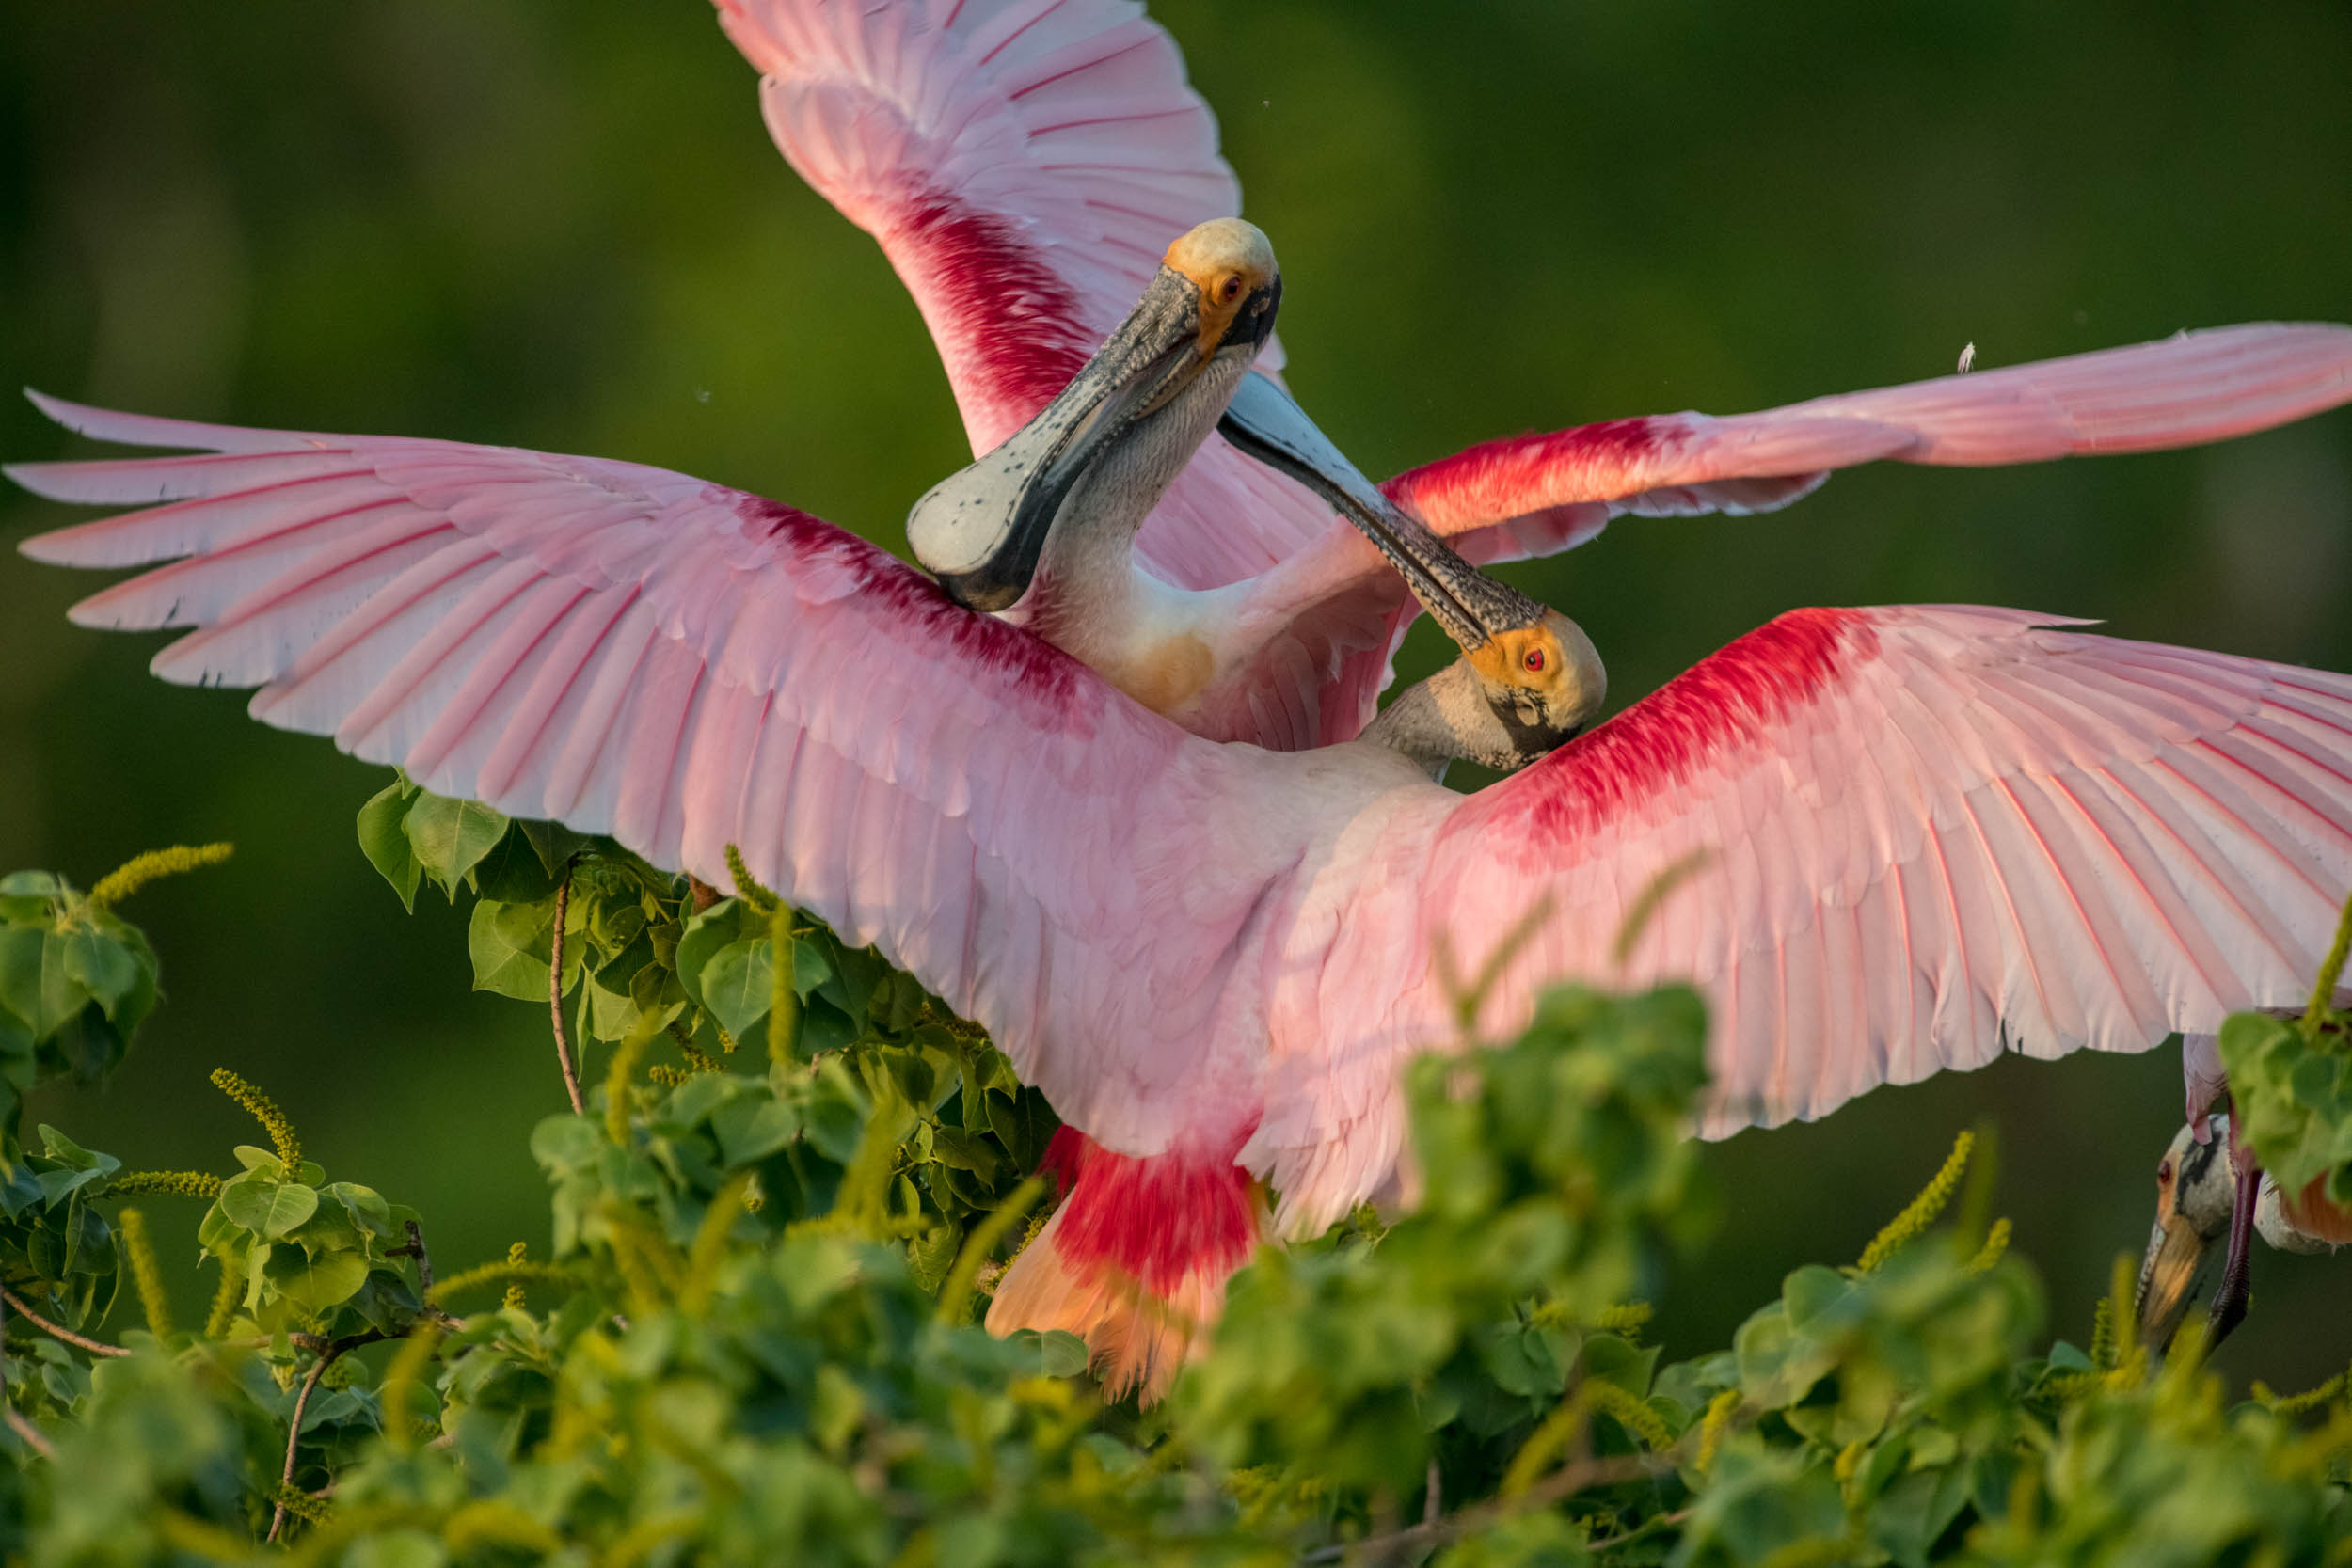 Roseate Spoonbill Territorial Dispute from the 2018 Tours